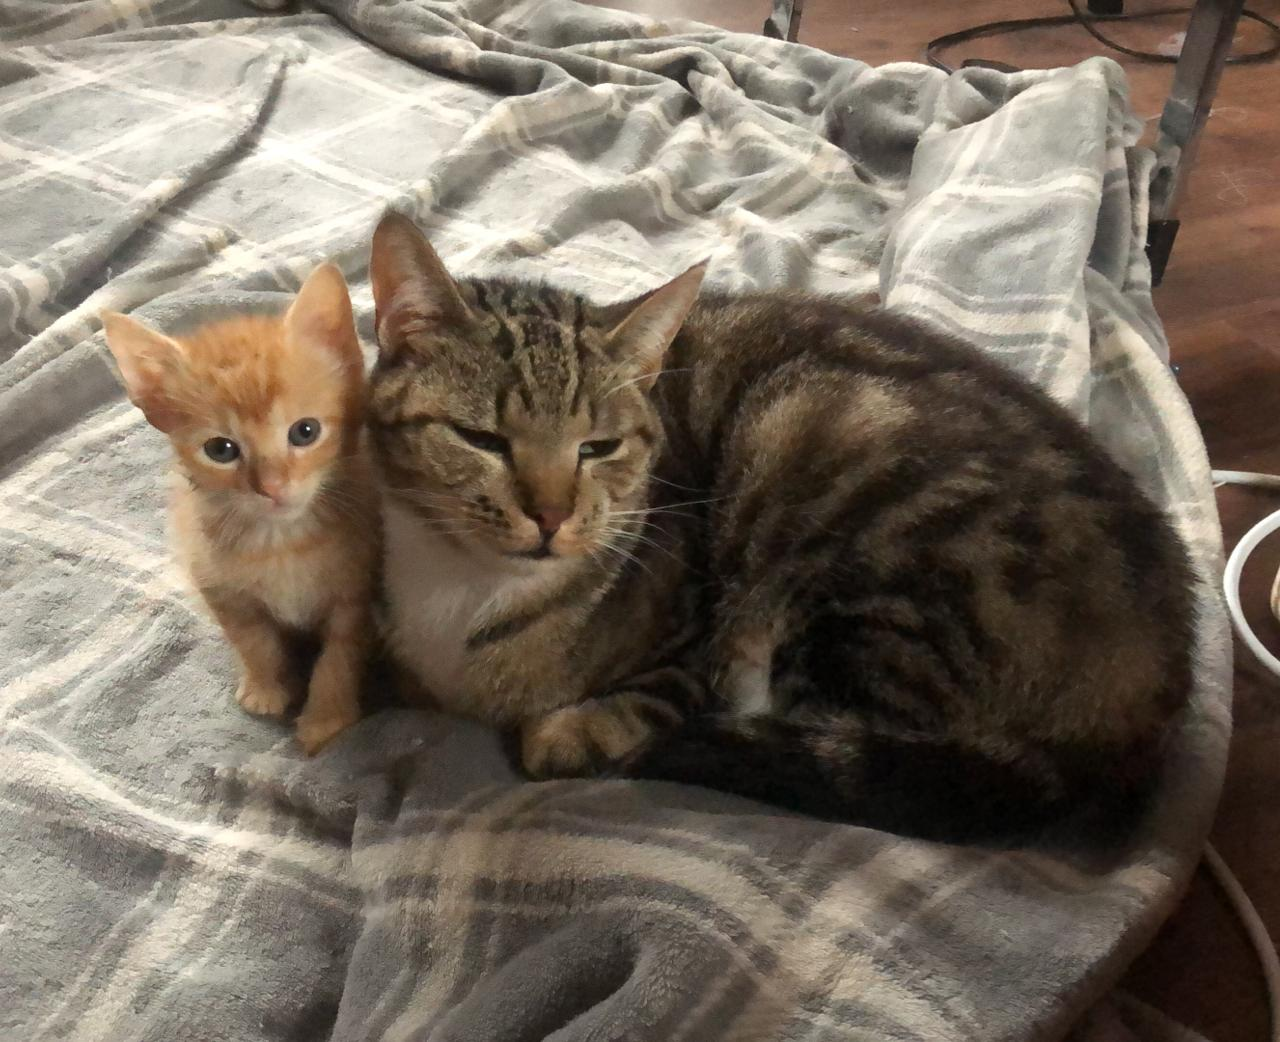 We have over 80 cats and kittens ready for adoption from our foster homes.